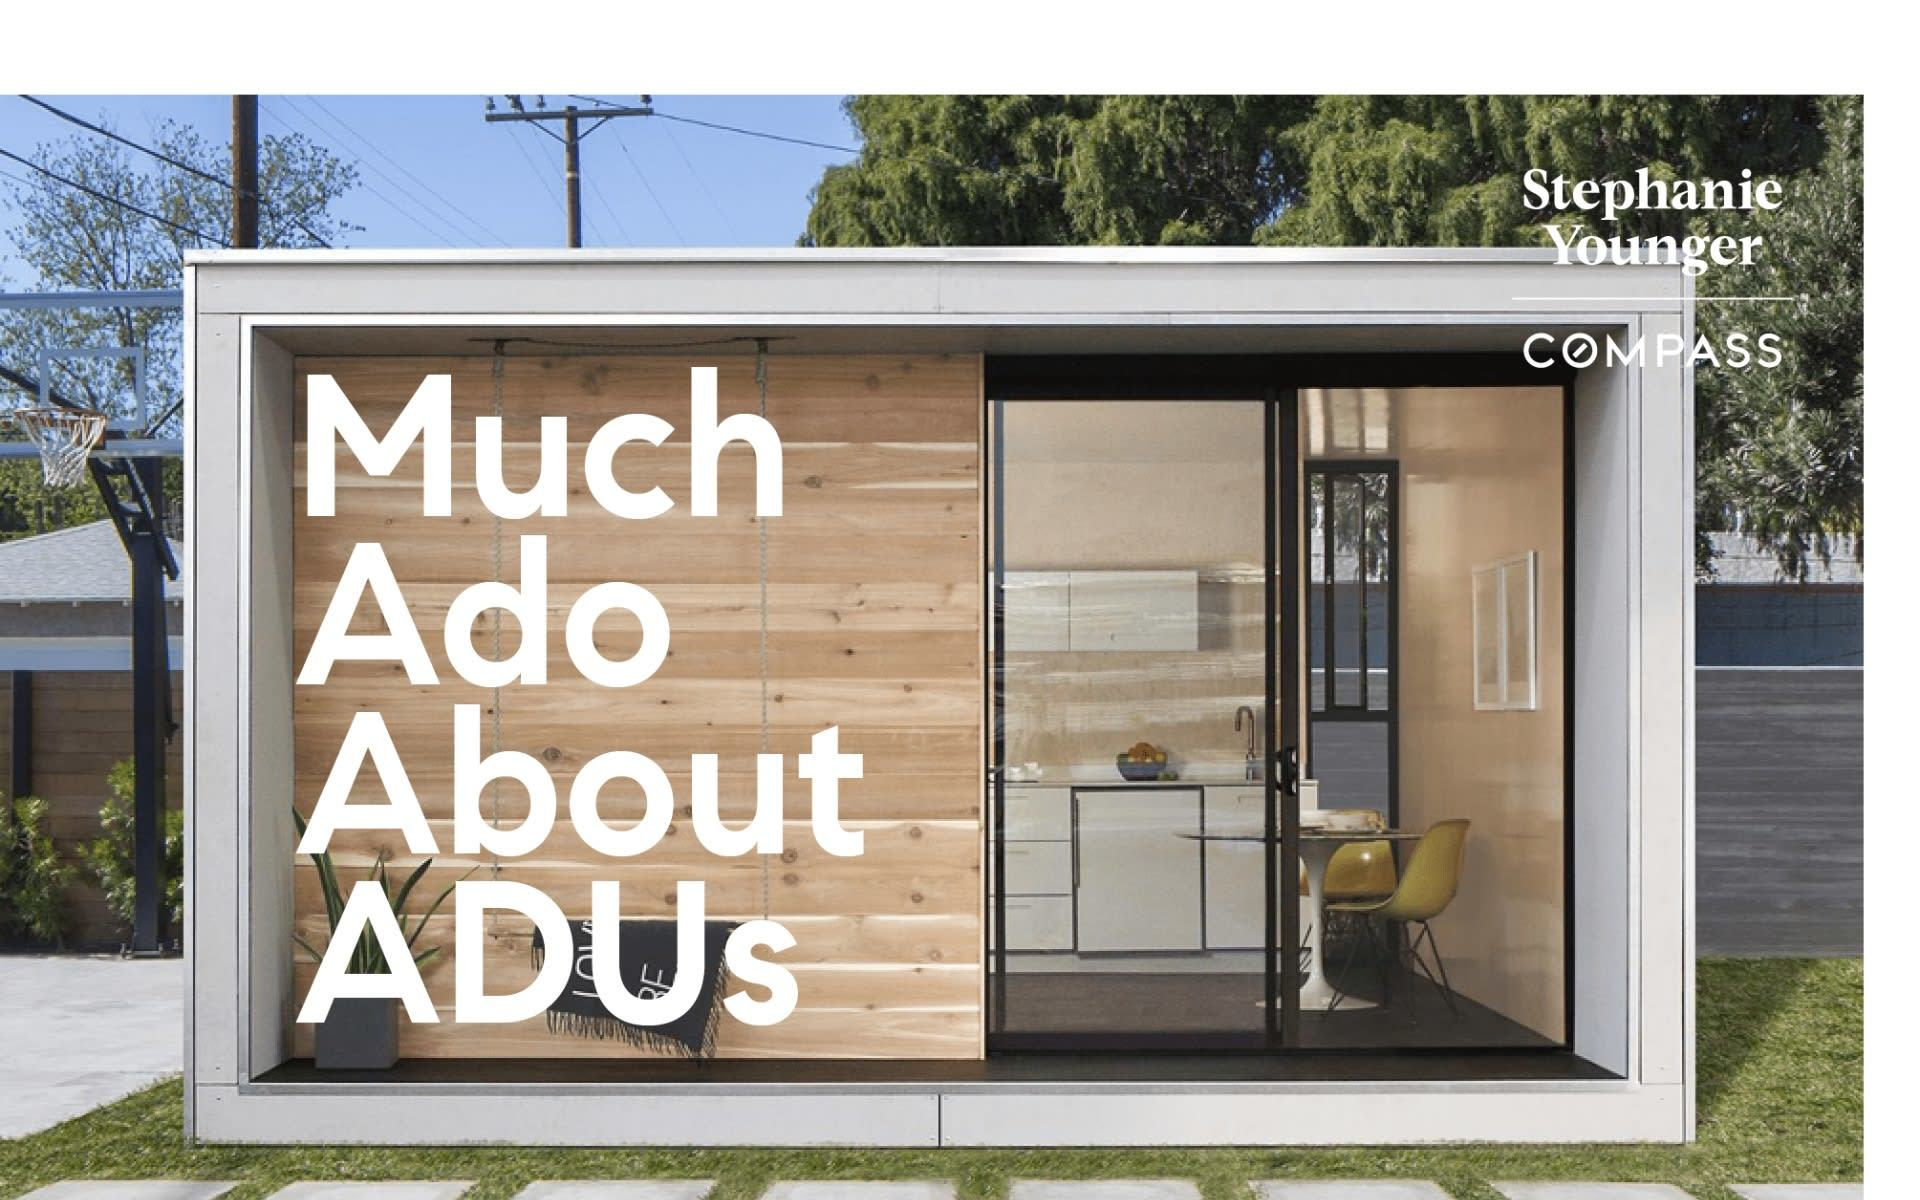 Much Ado About ADUs